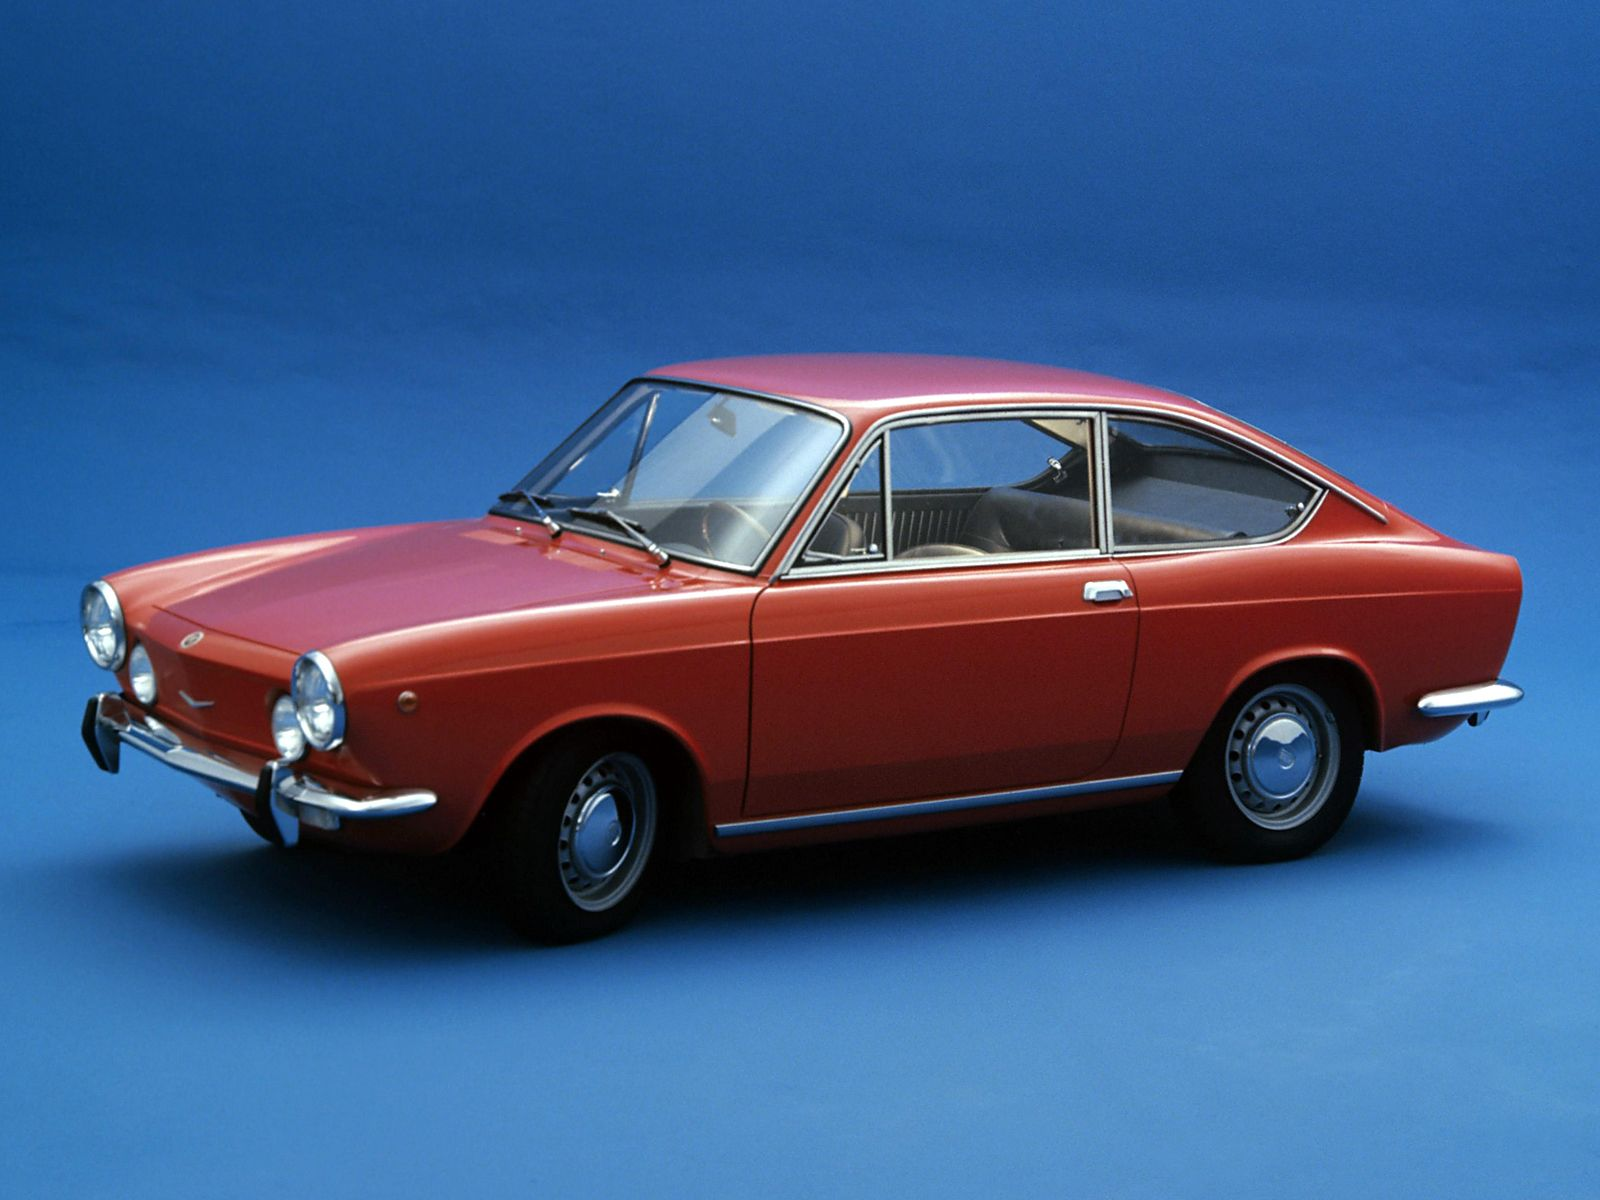 1968 71 Fiat 850 Sport Coupe Coches Clasicos Autos Y Coches